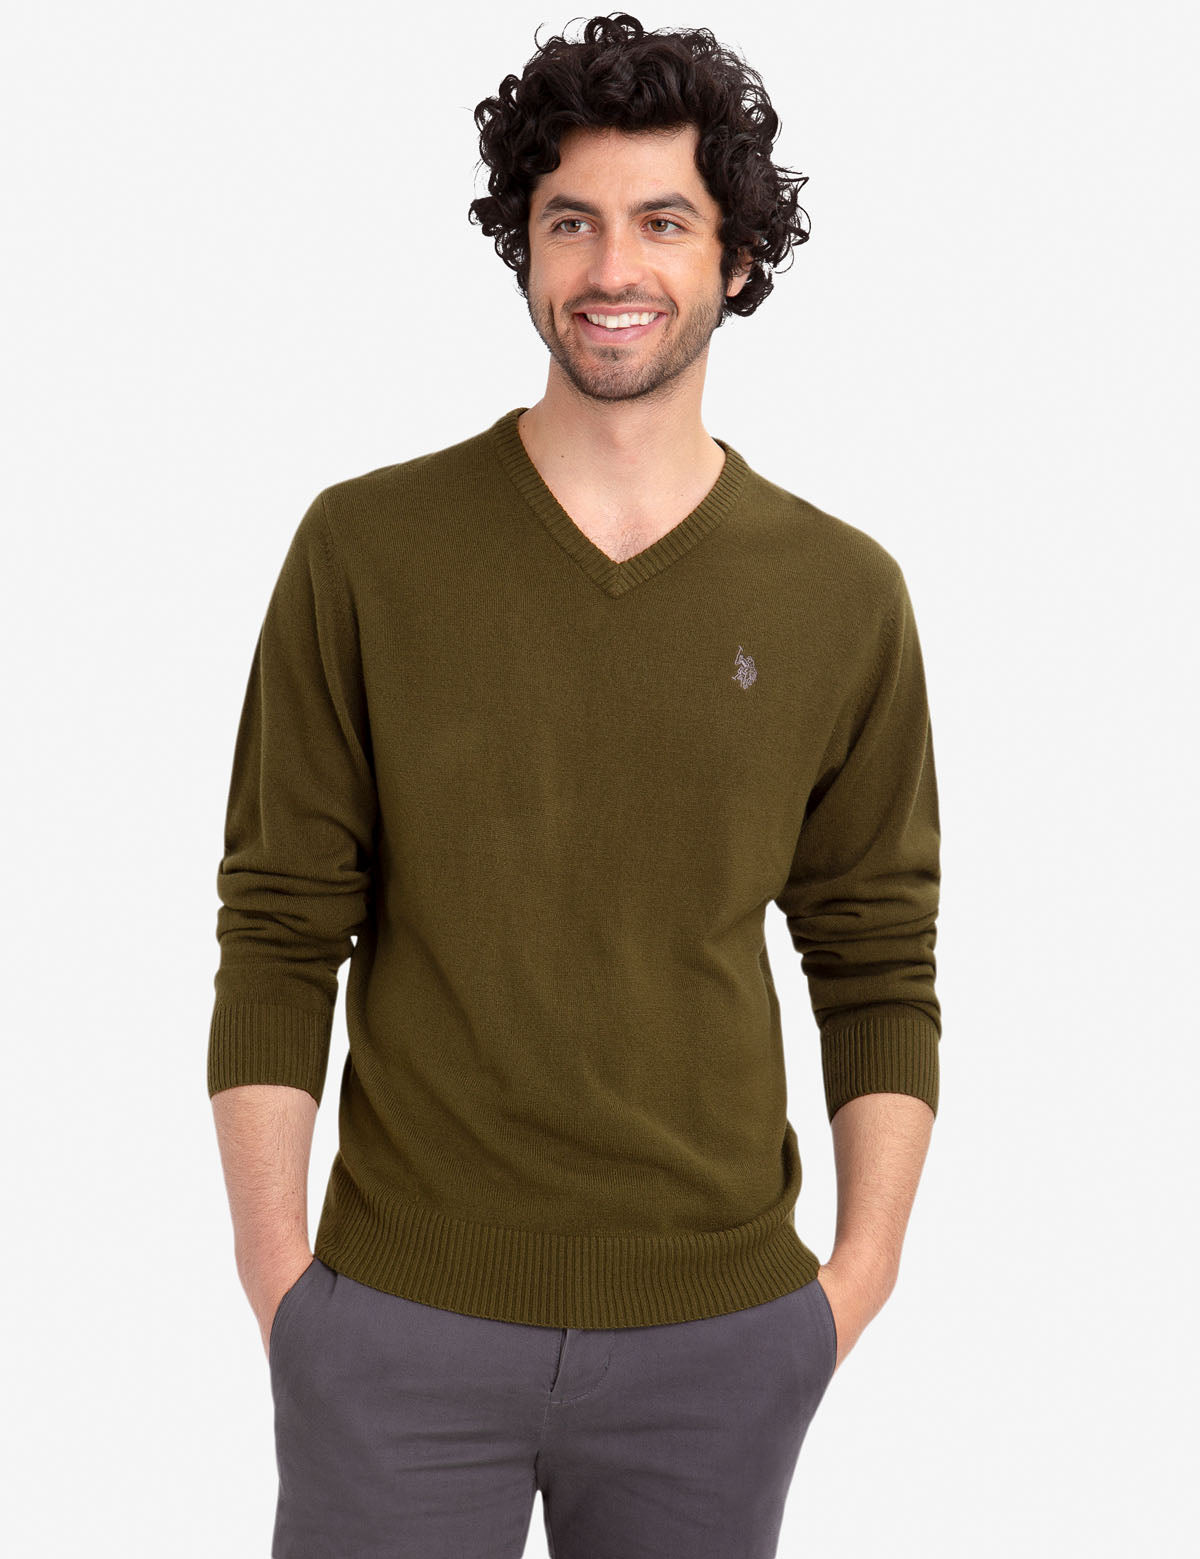 Mens Solid V-Neck Sweater U.S POLO ASSN